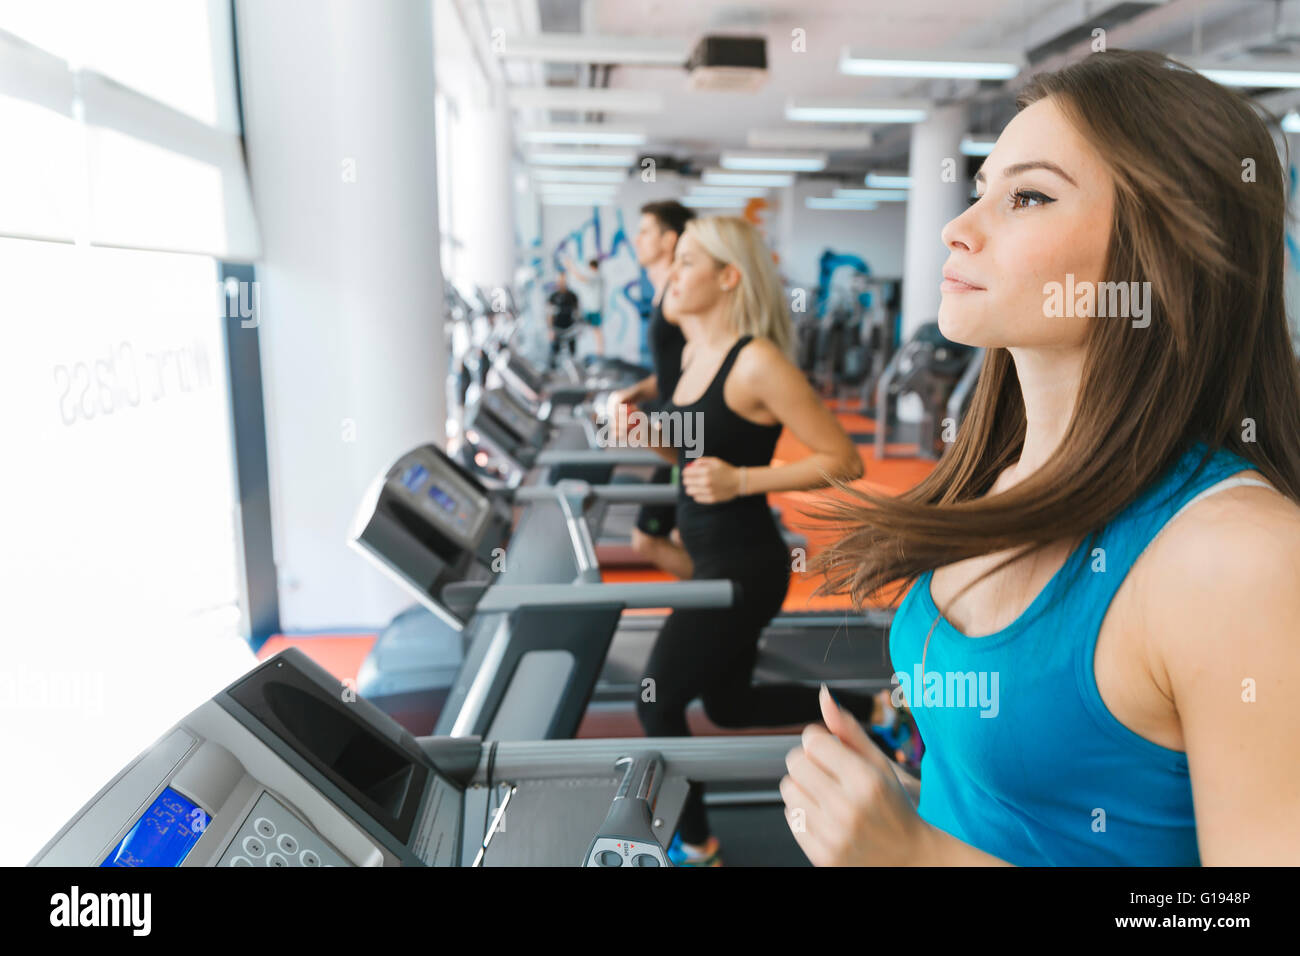 People running on treadmills in gym to keep body in shape - Stock Image